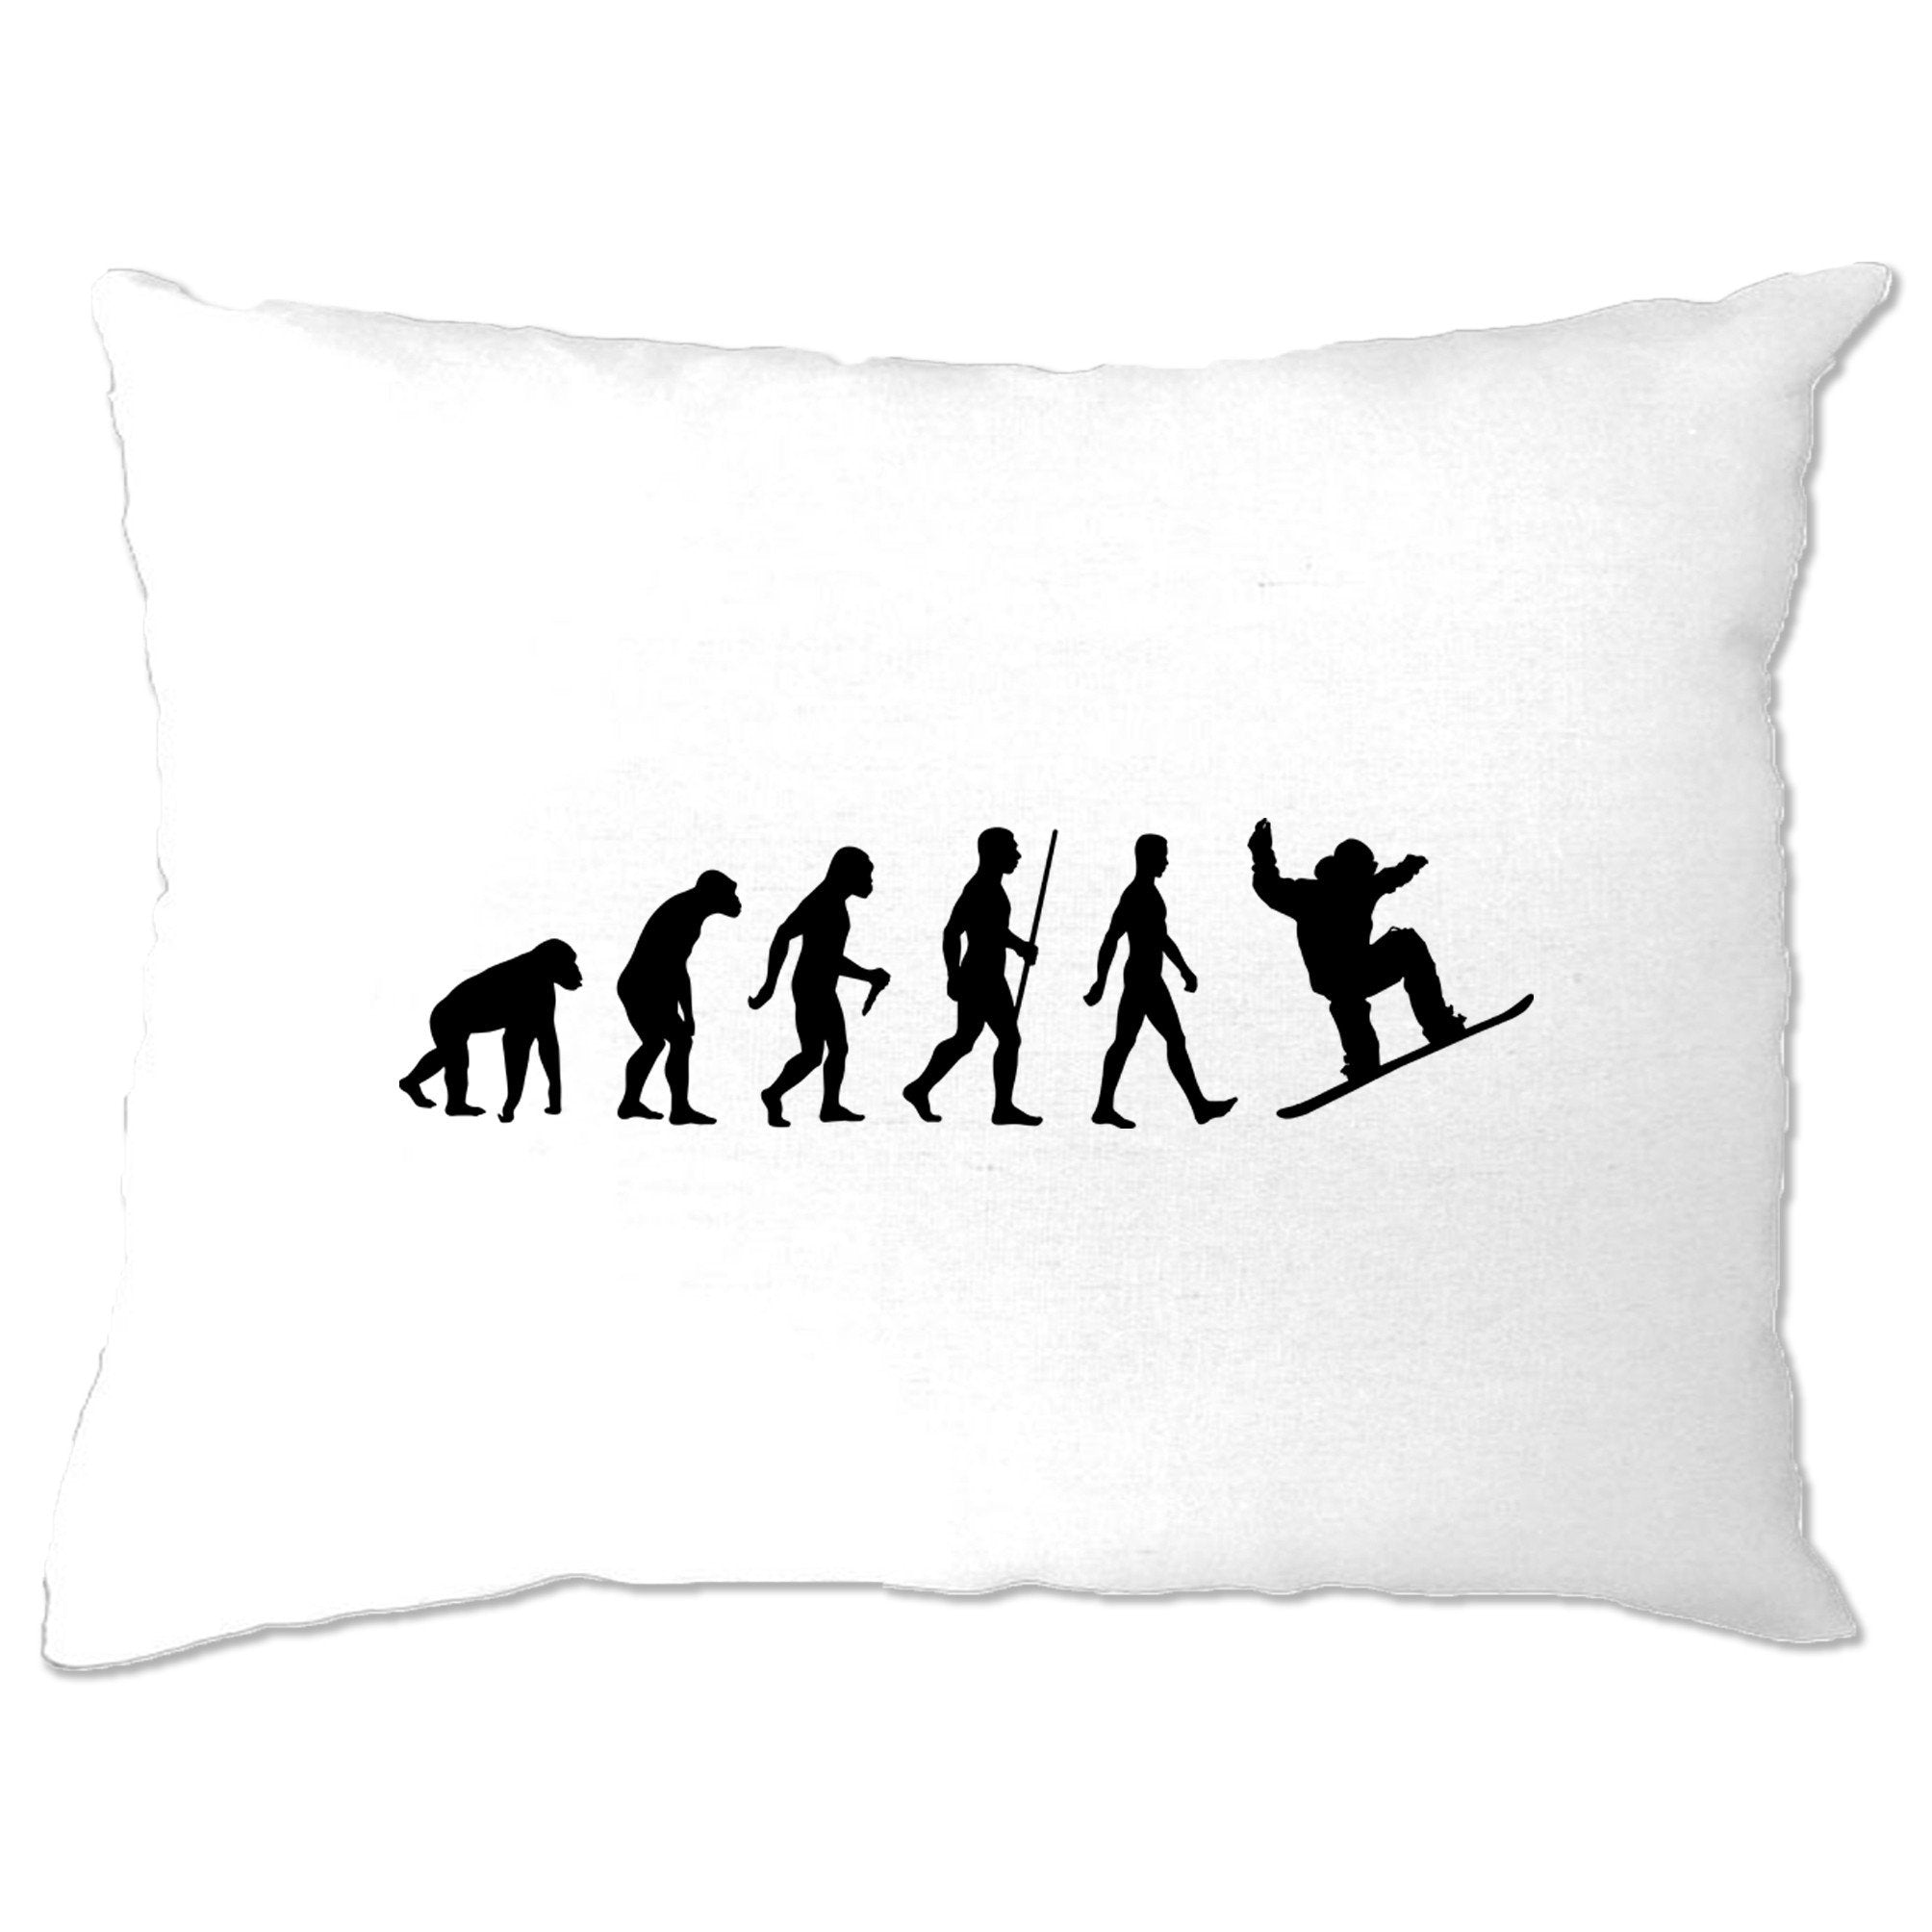 Sports Pillow Case The Evolution Of A Snowboarder